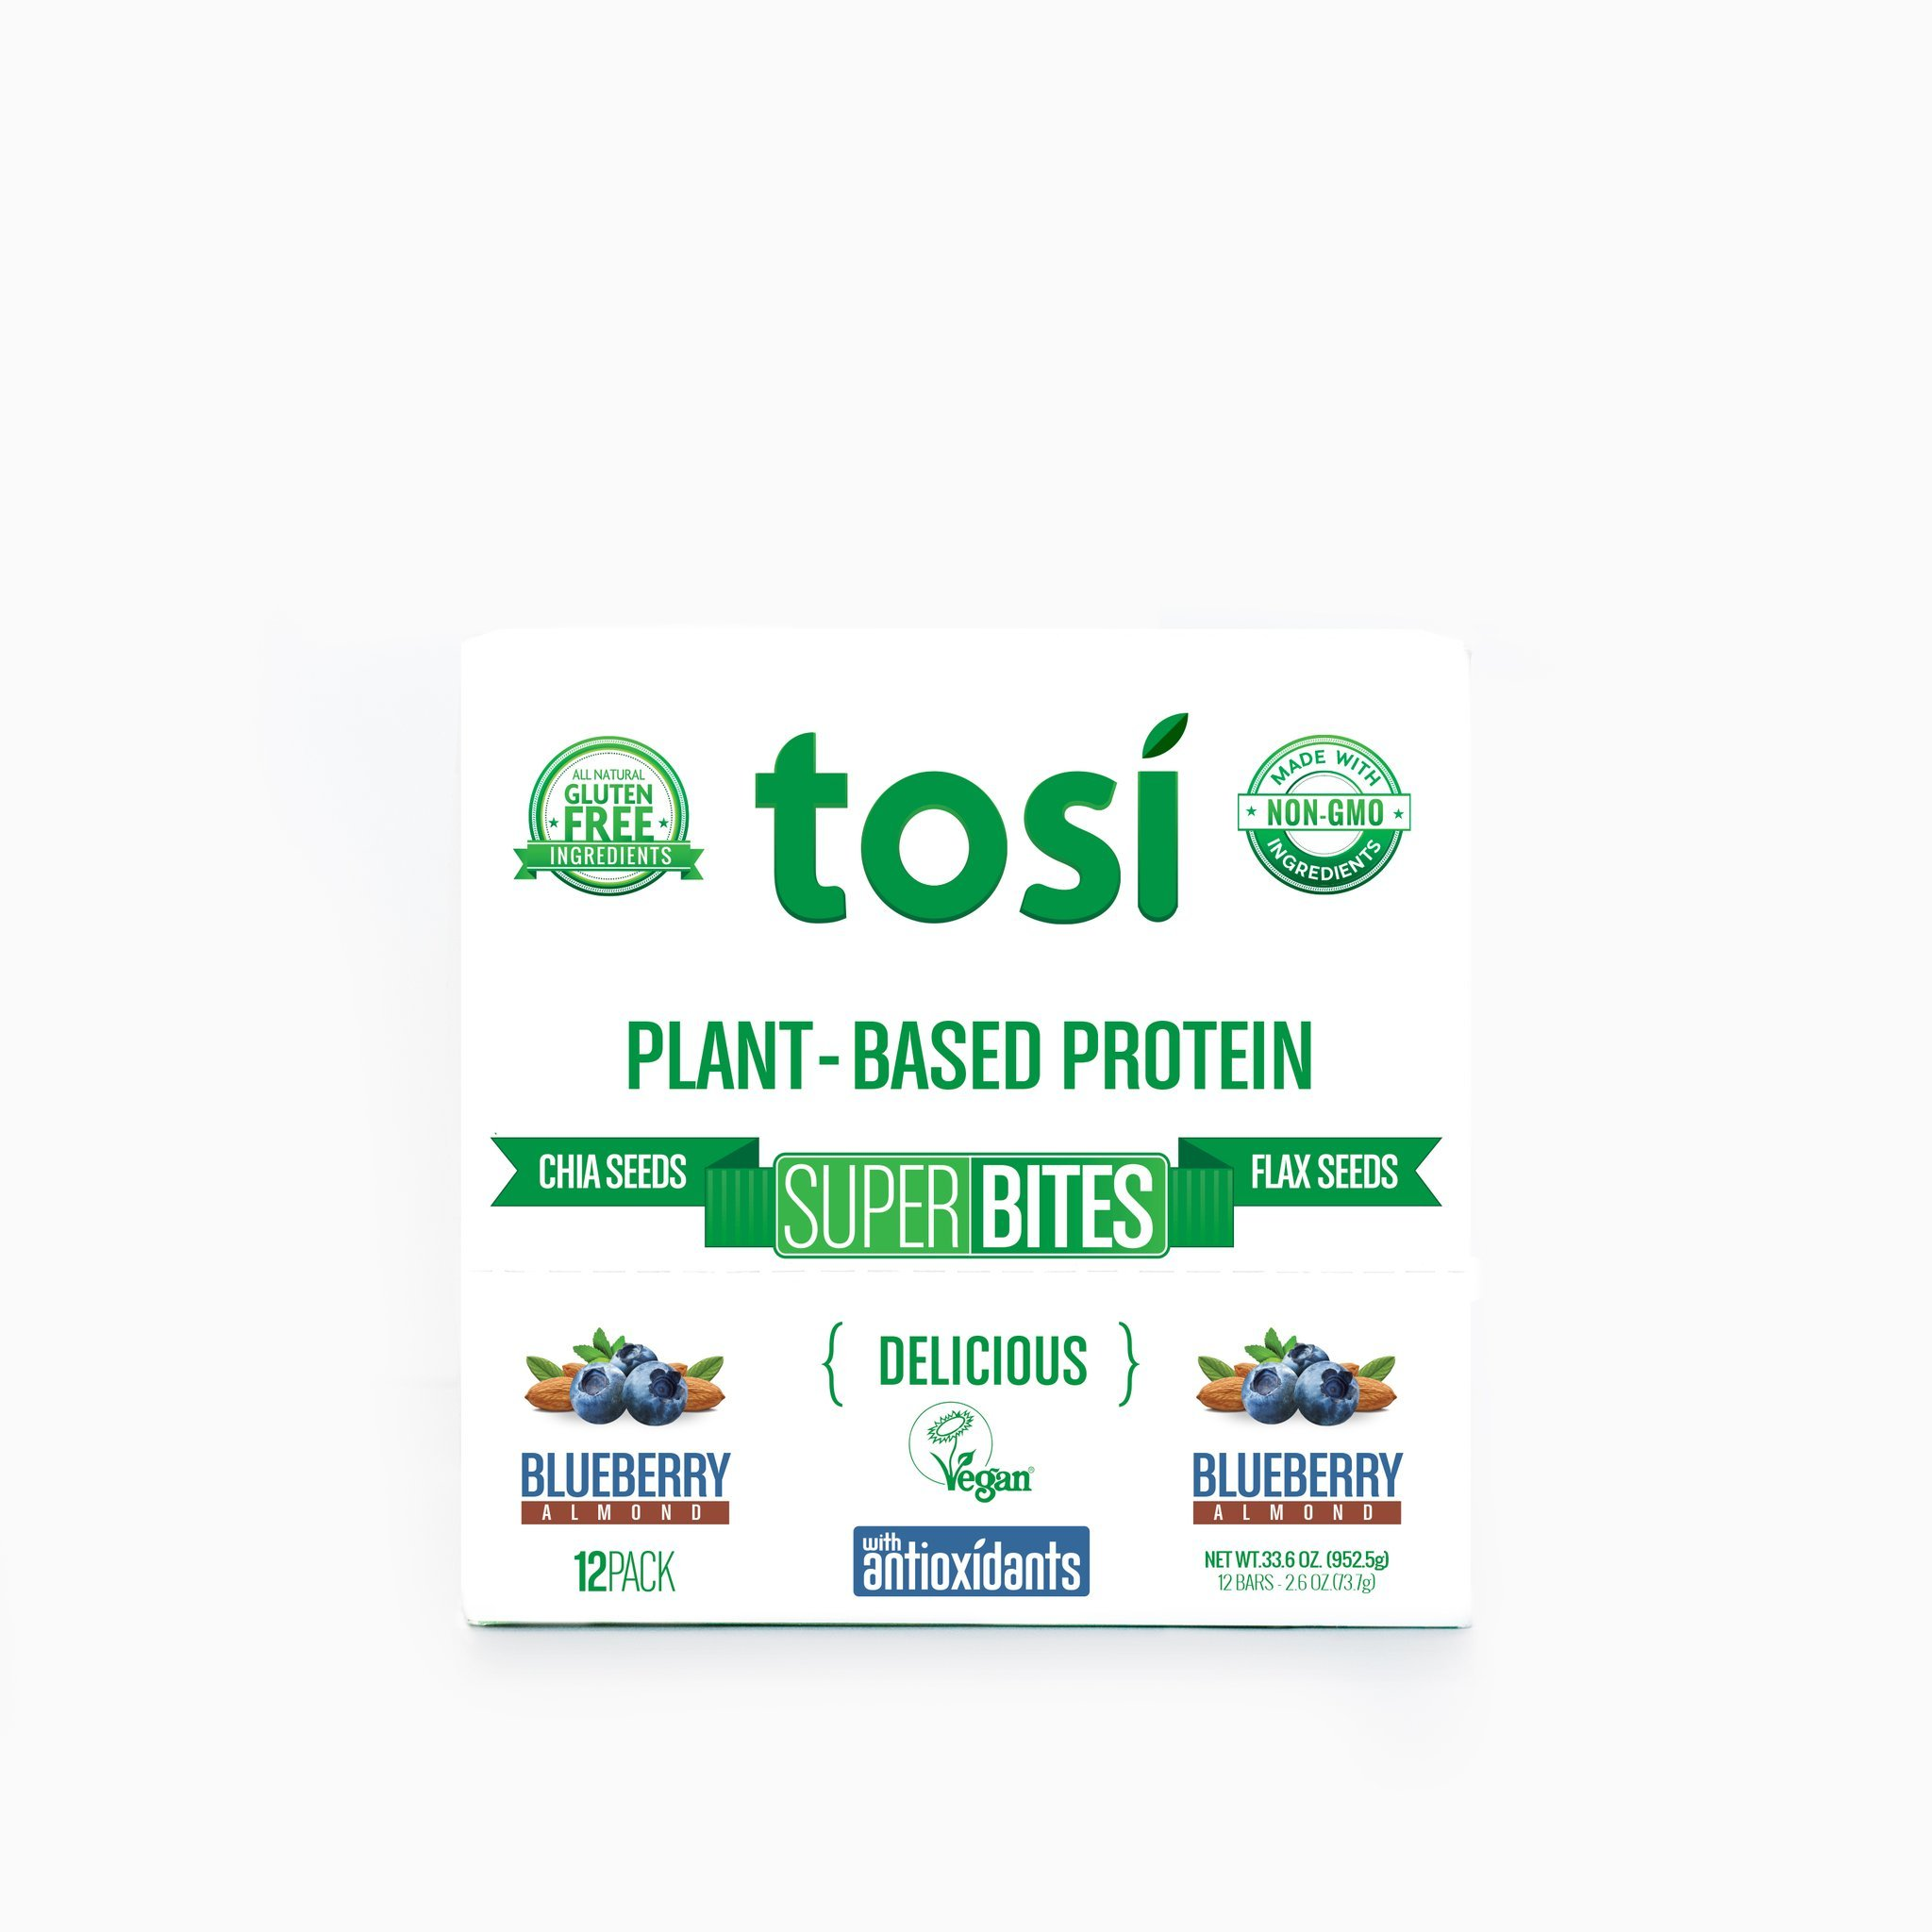 Tosi SuperBites Blueberry Almond, 2.6 oz Bar, 12 Count Pack/Vegan, Plant-Based, Gluten Free, Omega 3's and Fiber